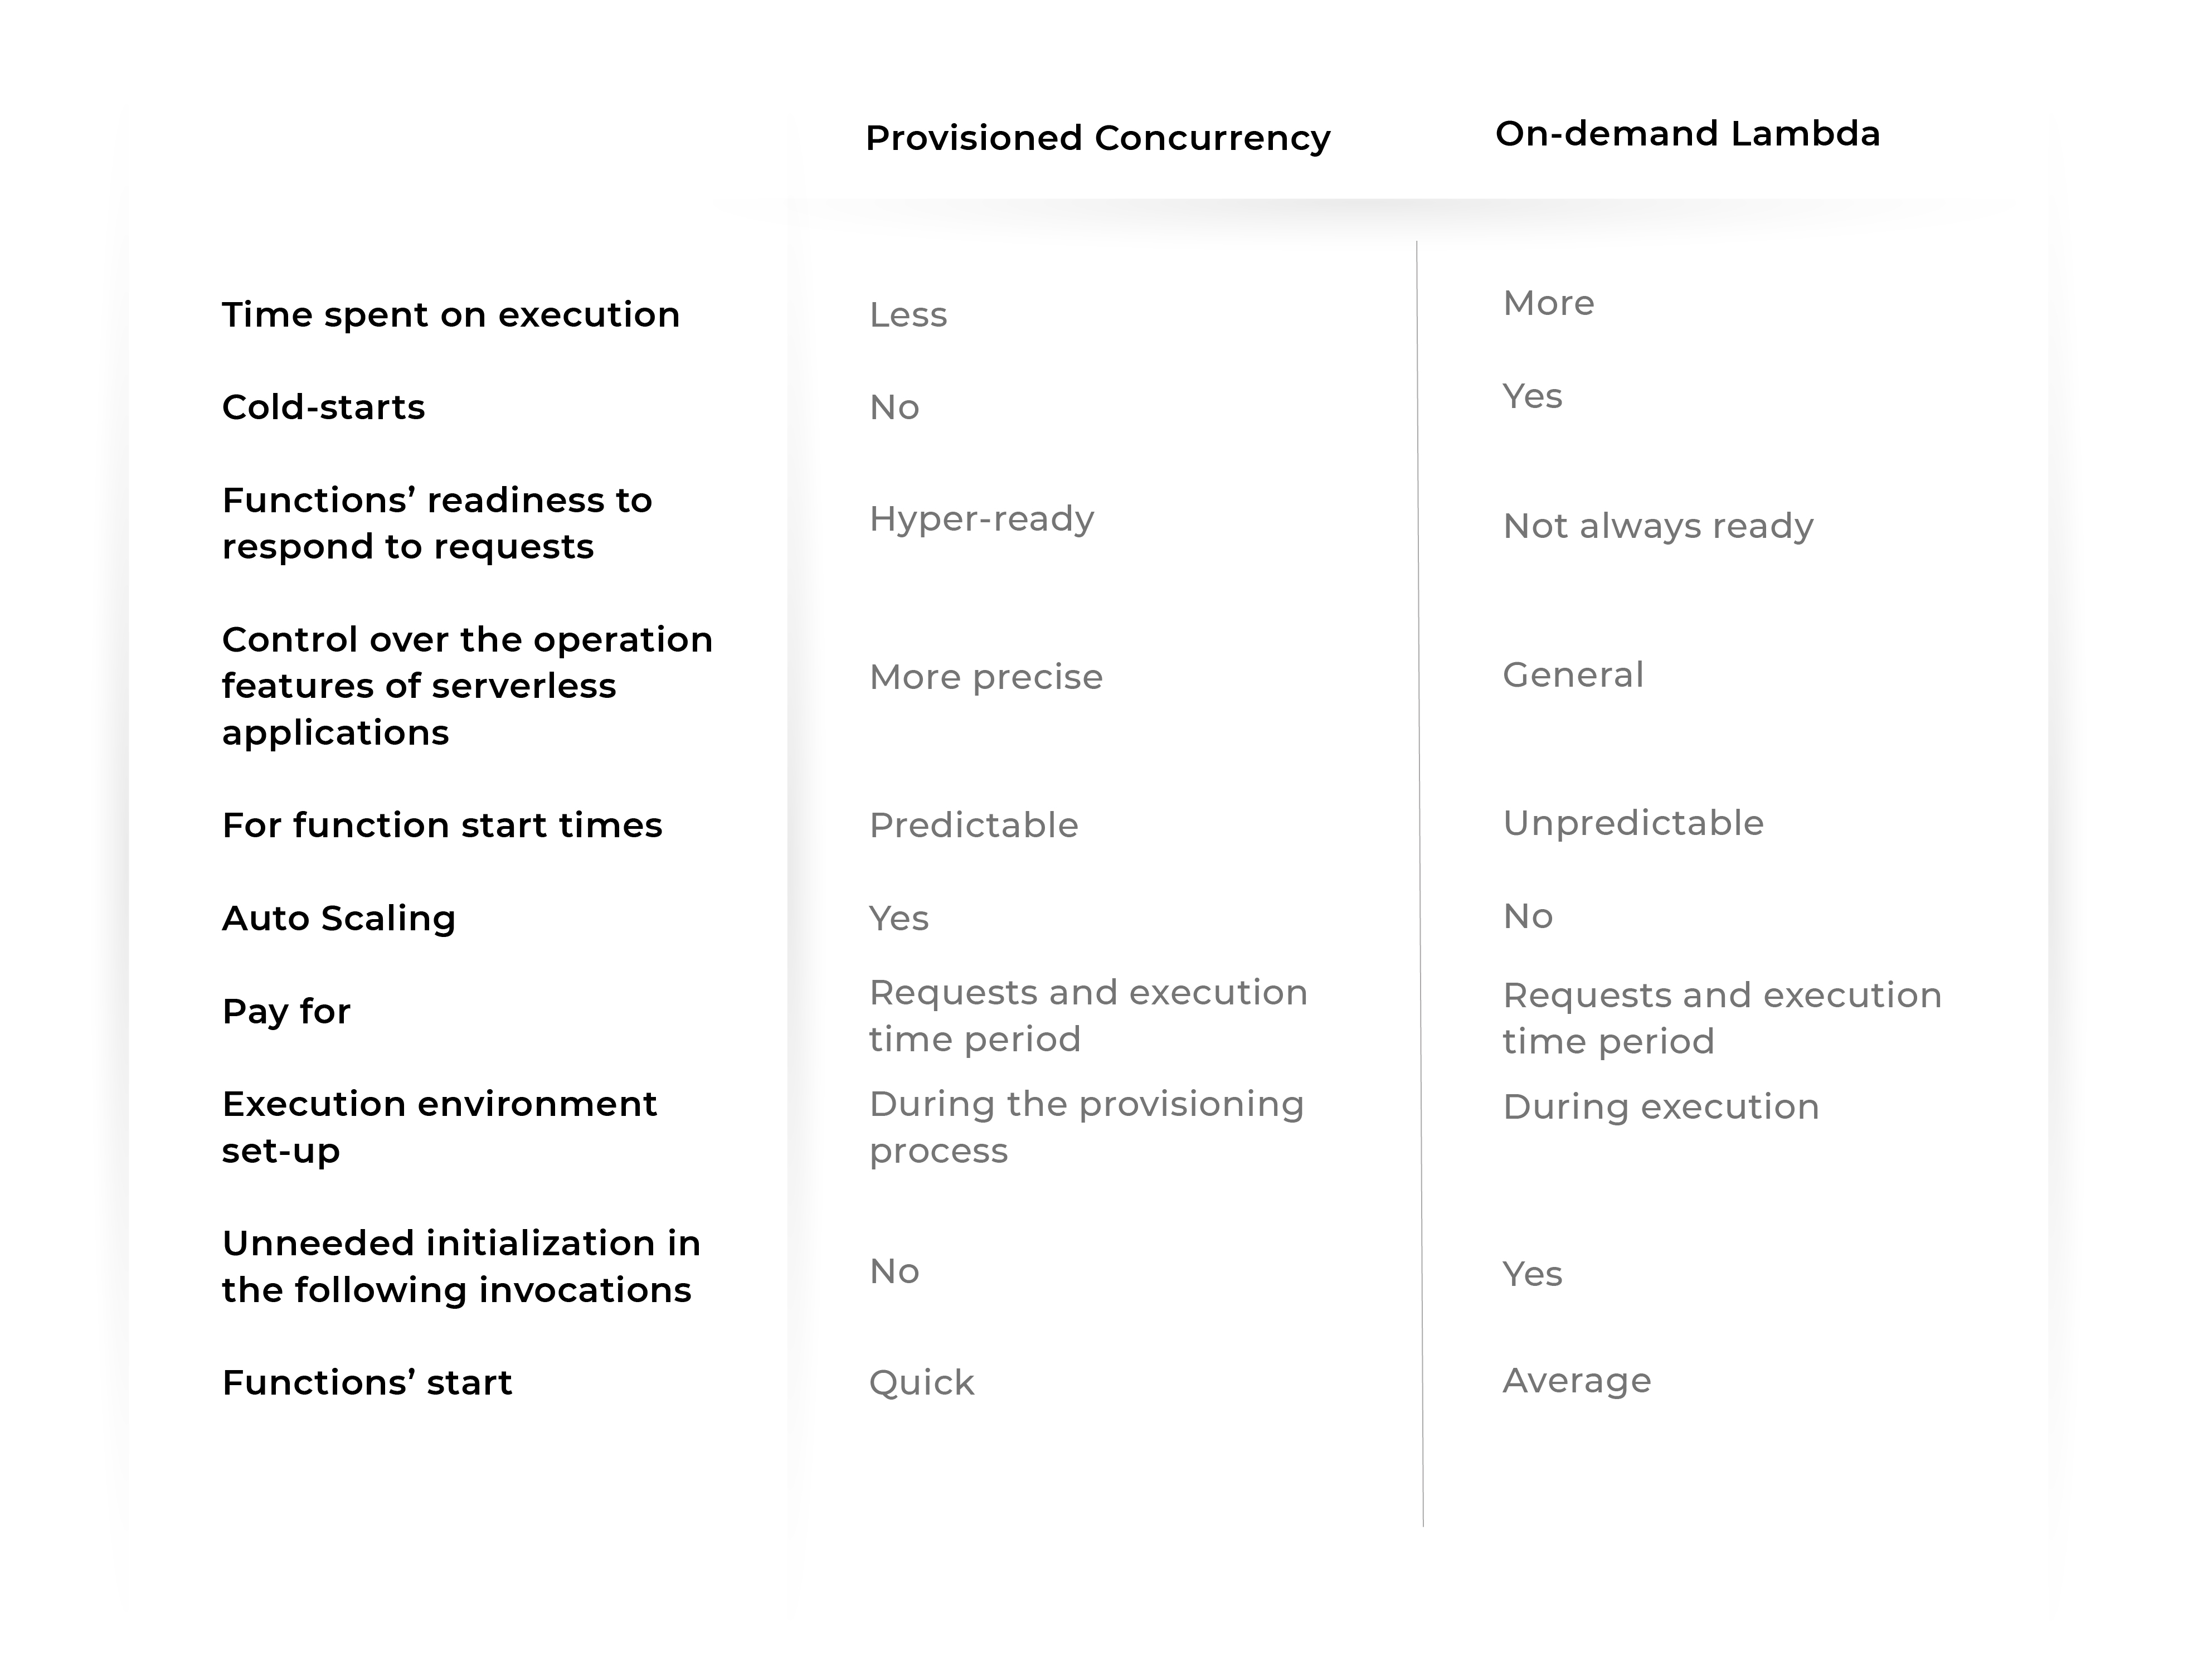 Provisioned Concurrency vs On-demand Lambda